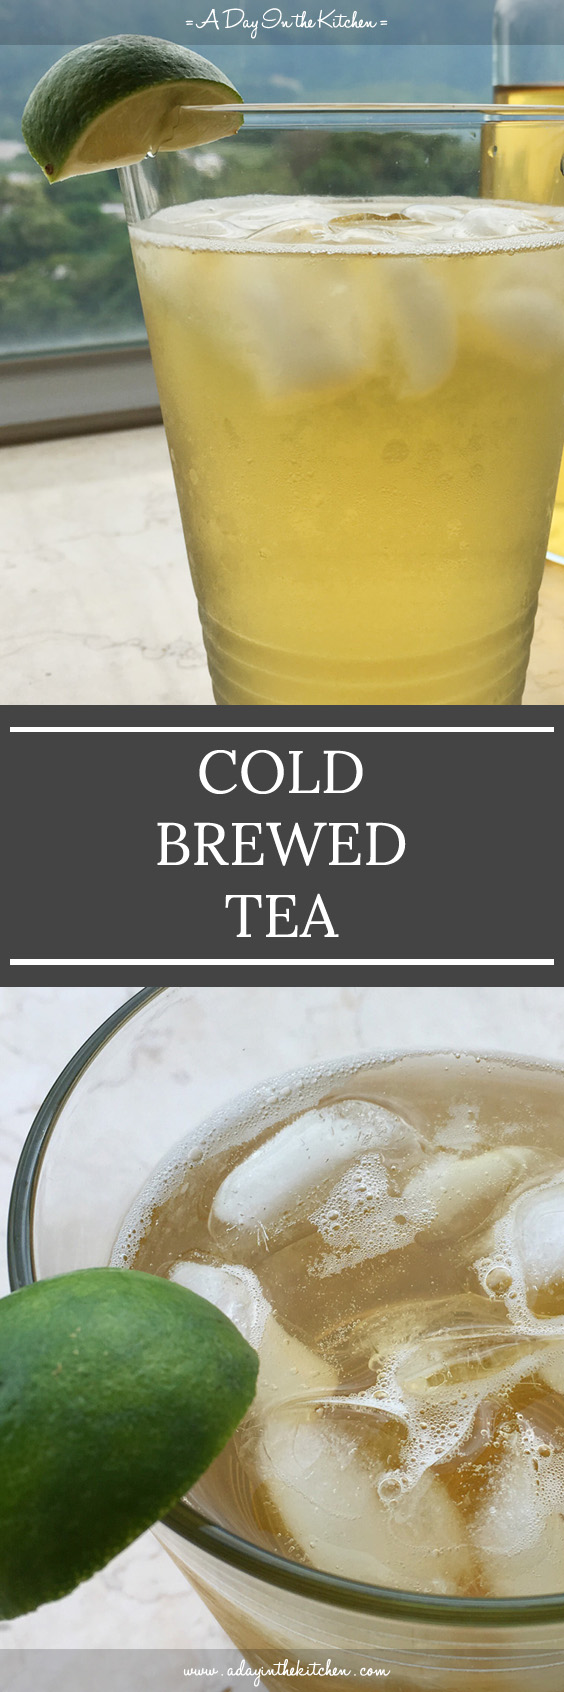 Cold Brewed Tea is a refreshing drink that is smooth and not bitter. Perfect for those hot summer days! #coldbrewedtea #tea #icedtea #coldbrew